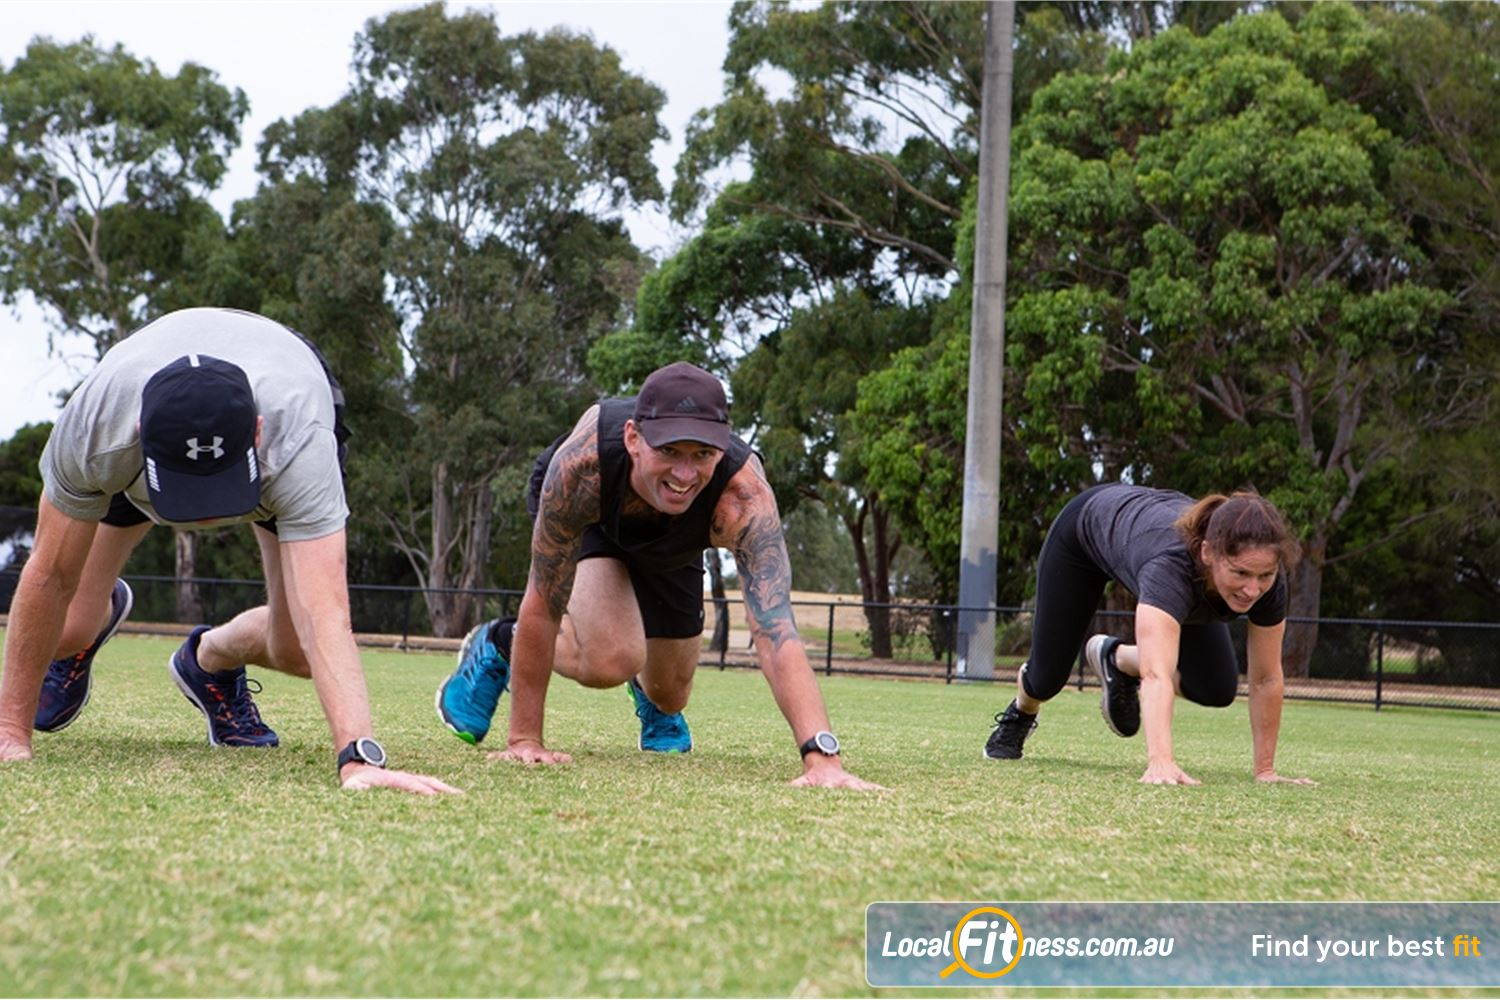 Step into Life Graceville Welcome to Step into Life Graceville Outdoor Group Training.